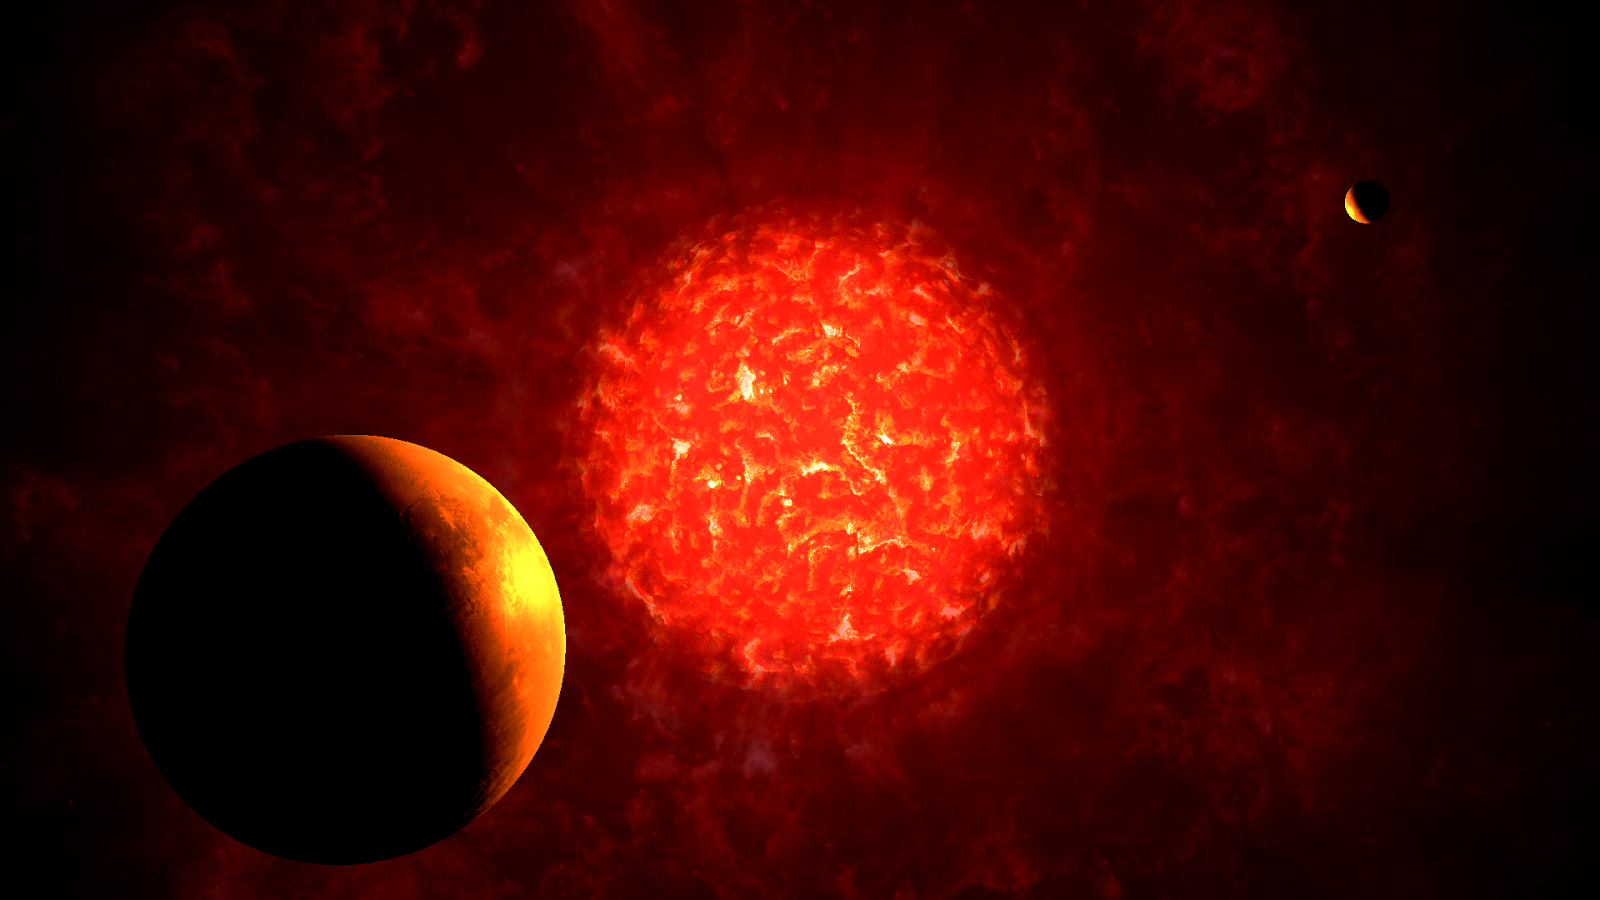 red giant definition - HD1600×900